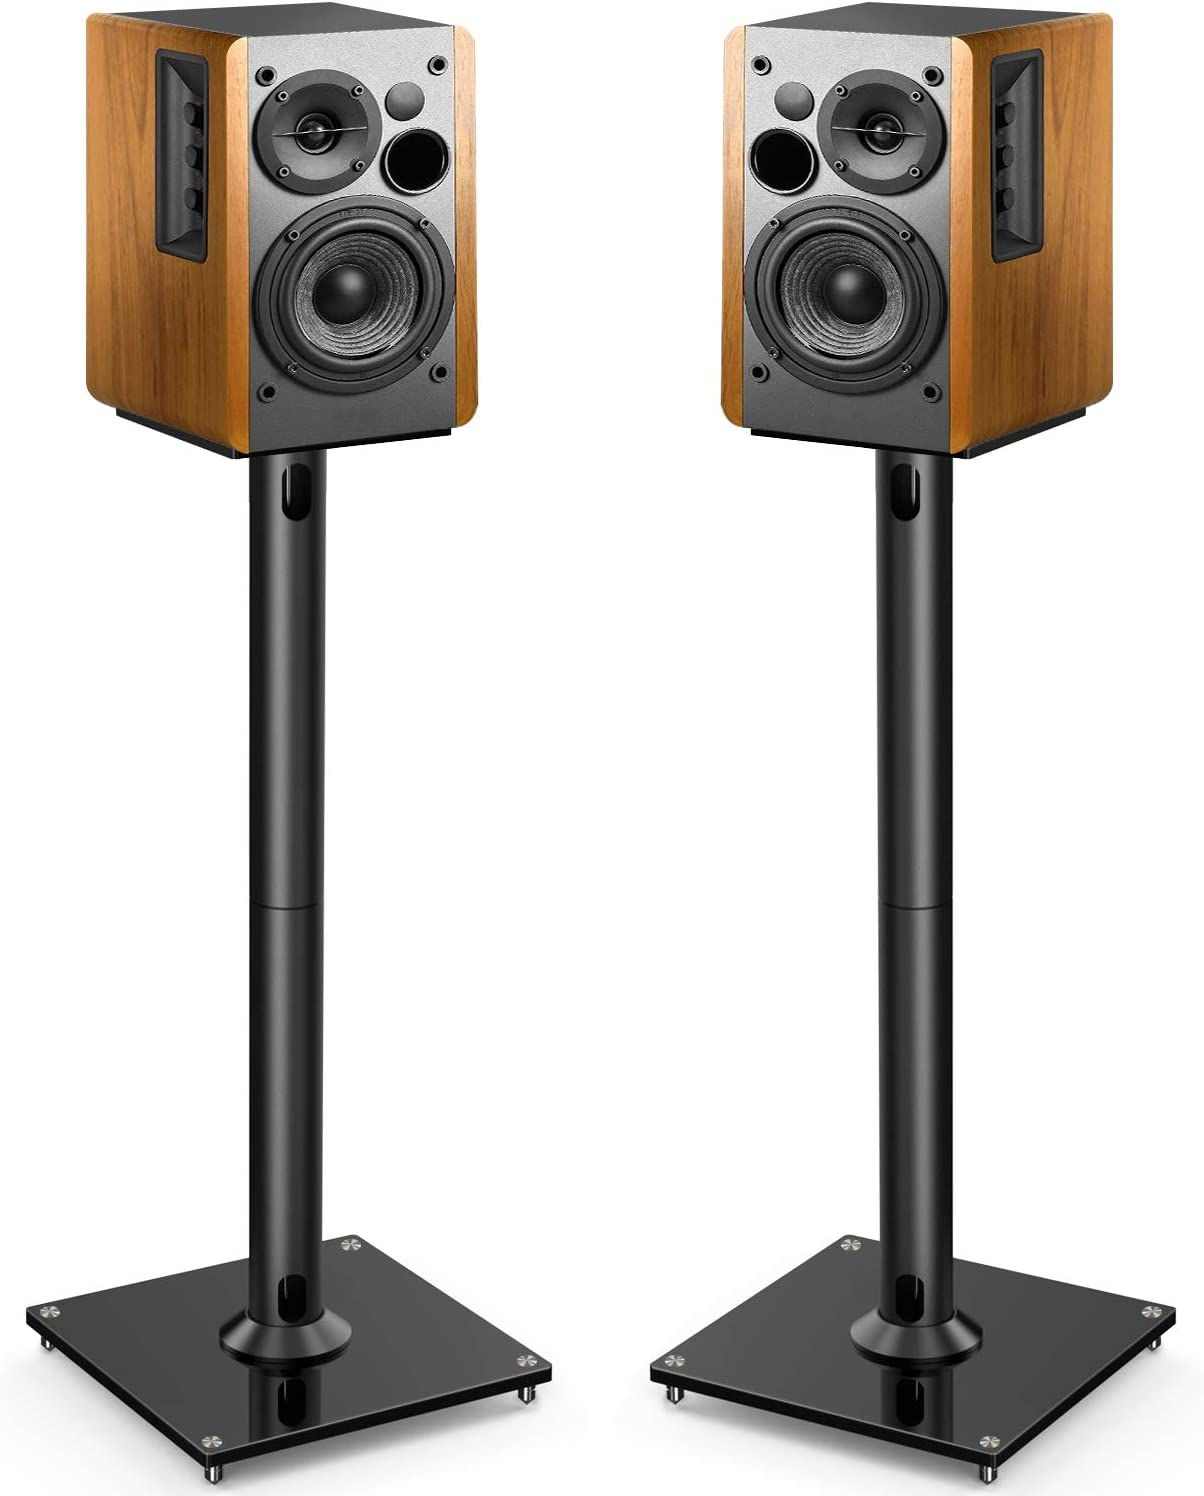 PERLESMITH Universal Floor Speaker Stands 10 Inch for Surround Sound,  Klipsch, Sony, Edifier, Yamaha, Polk & Other Bookshelf Speakers Weight up  to